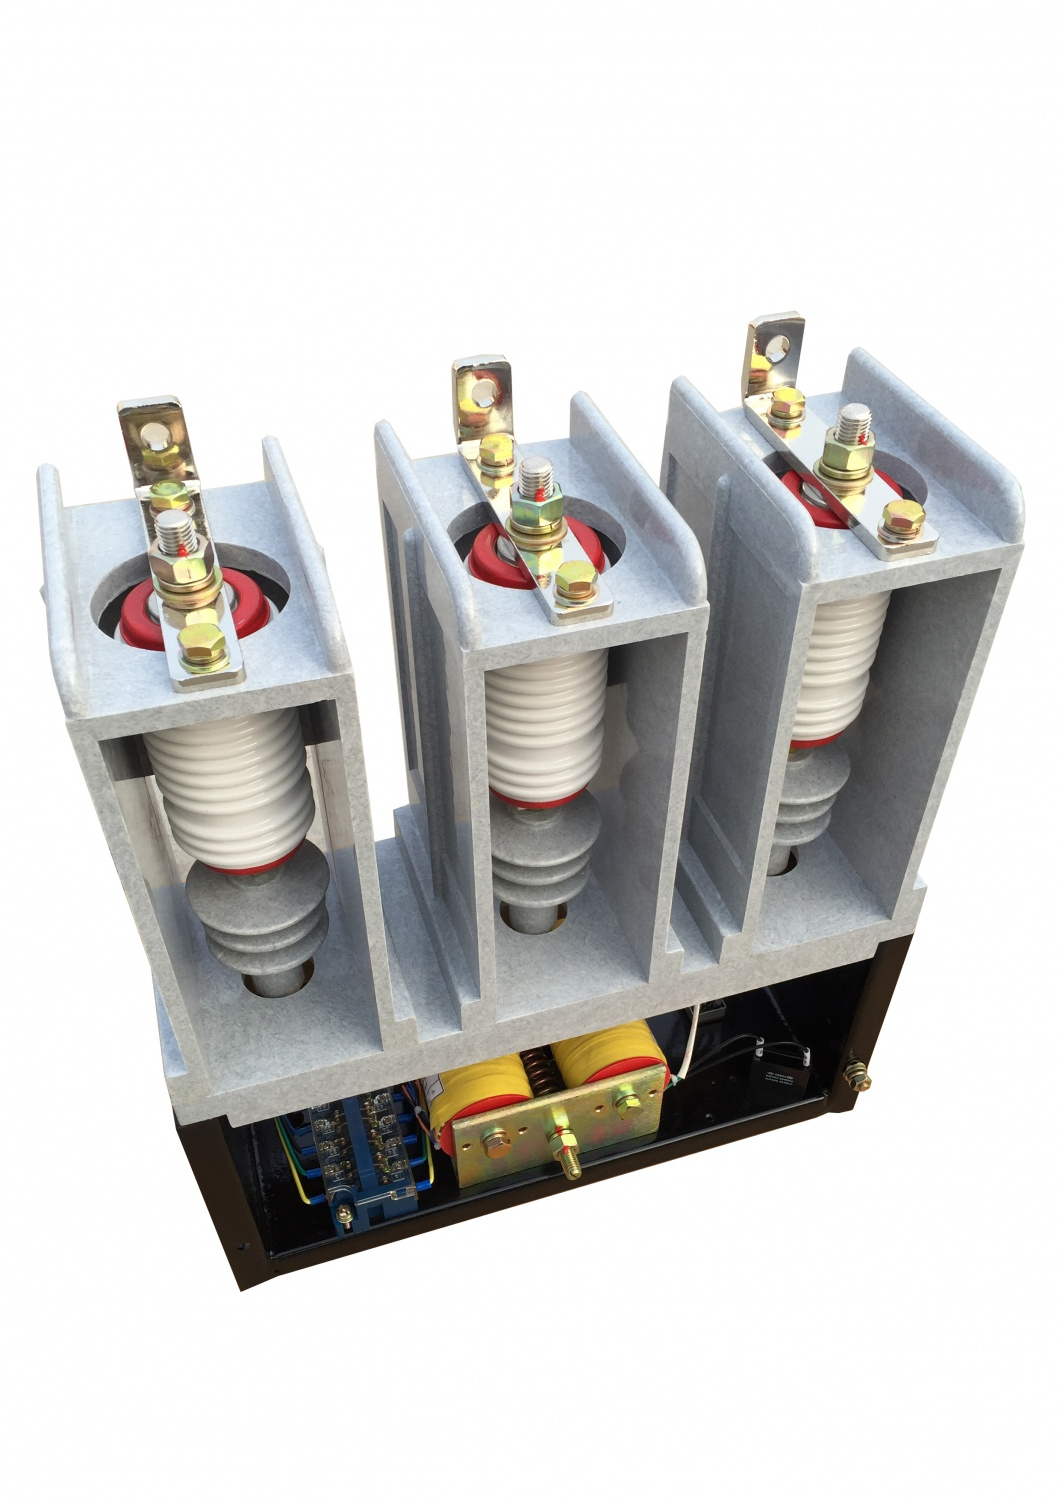 Vacuum Contactor  HVJ3-7.2/250  from JUCRO Electric